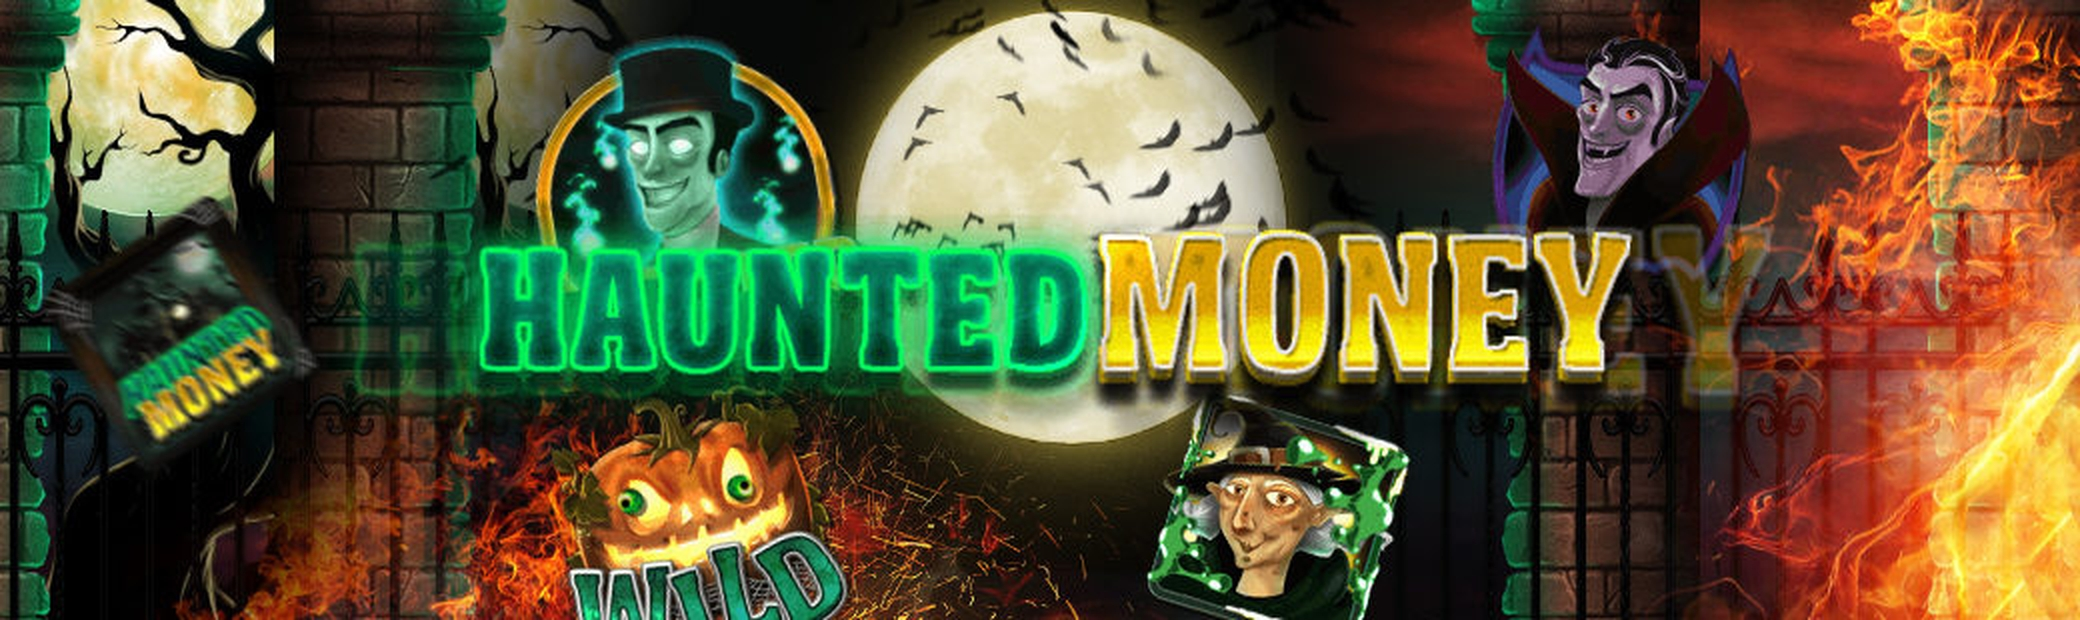 Haunted Money Online Slot Demo Game by Inbet Games